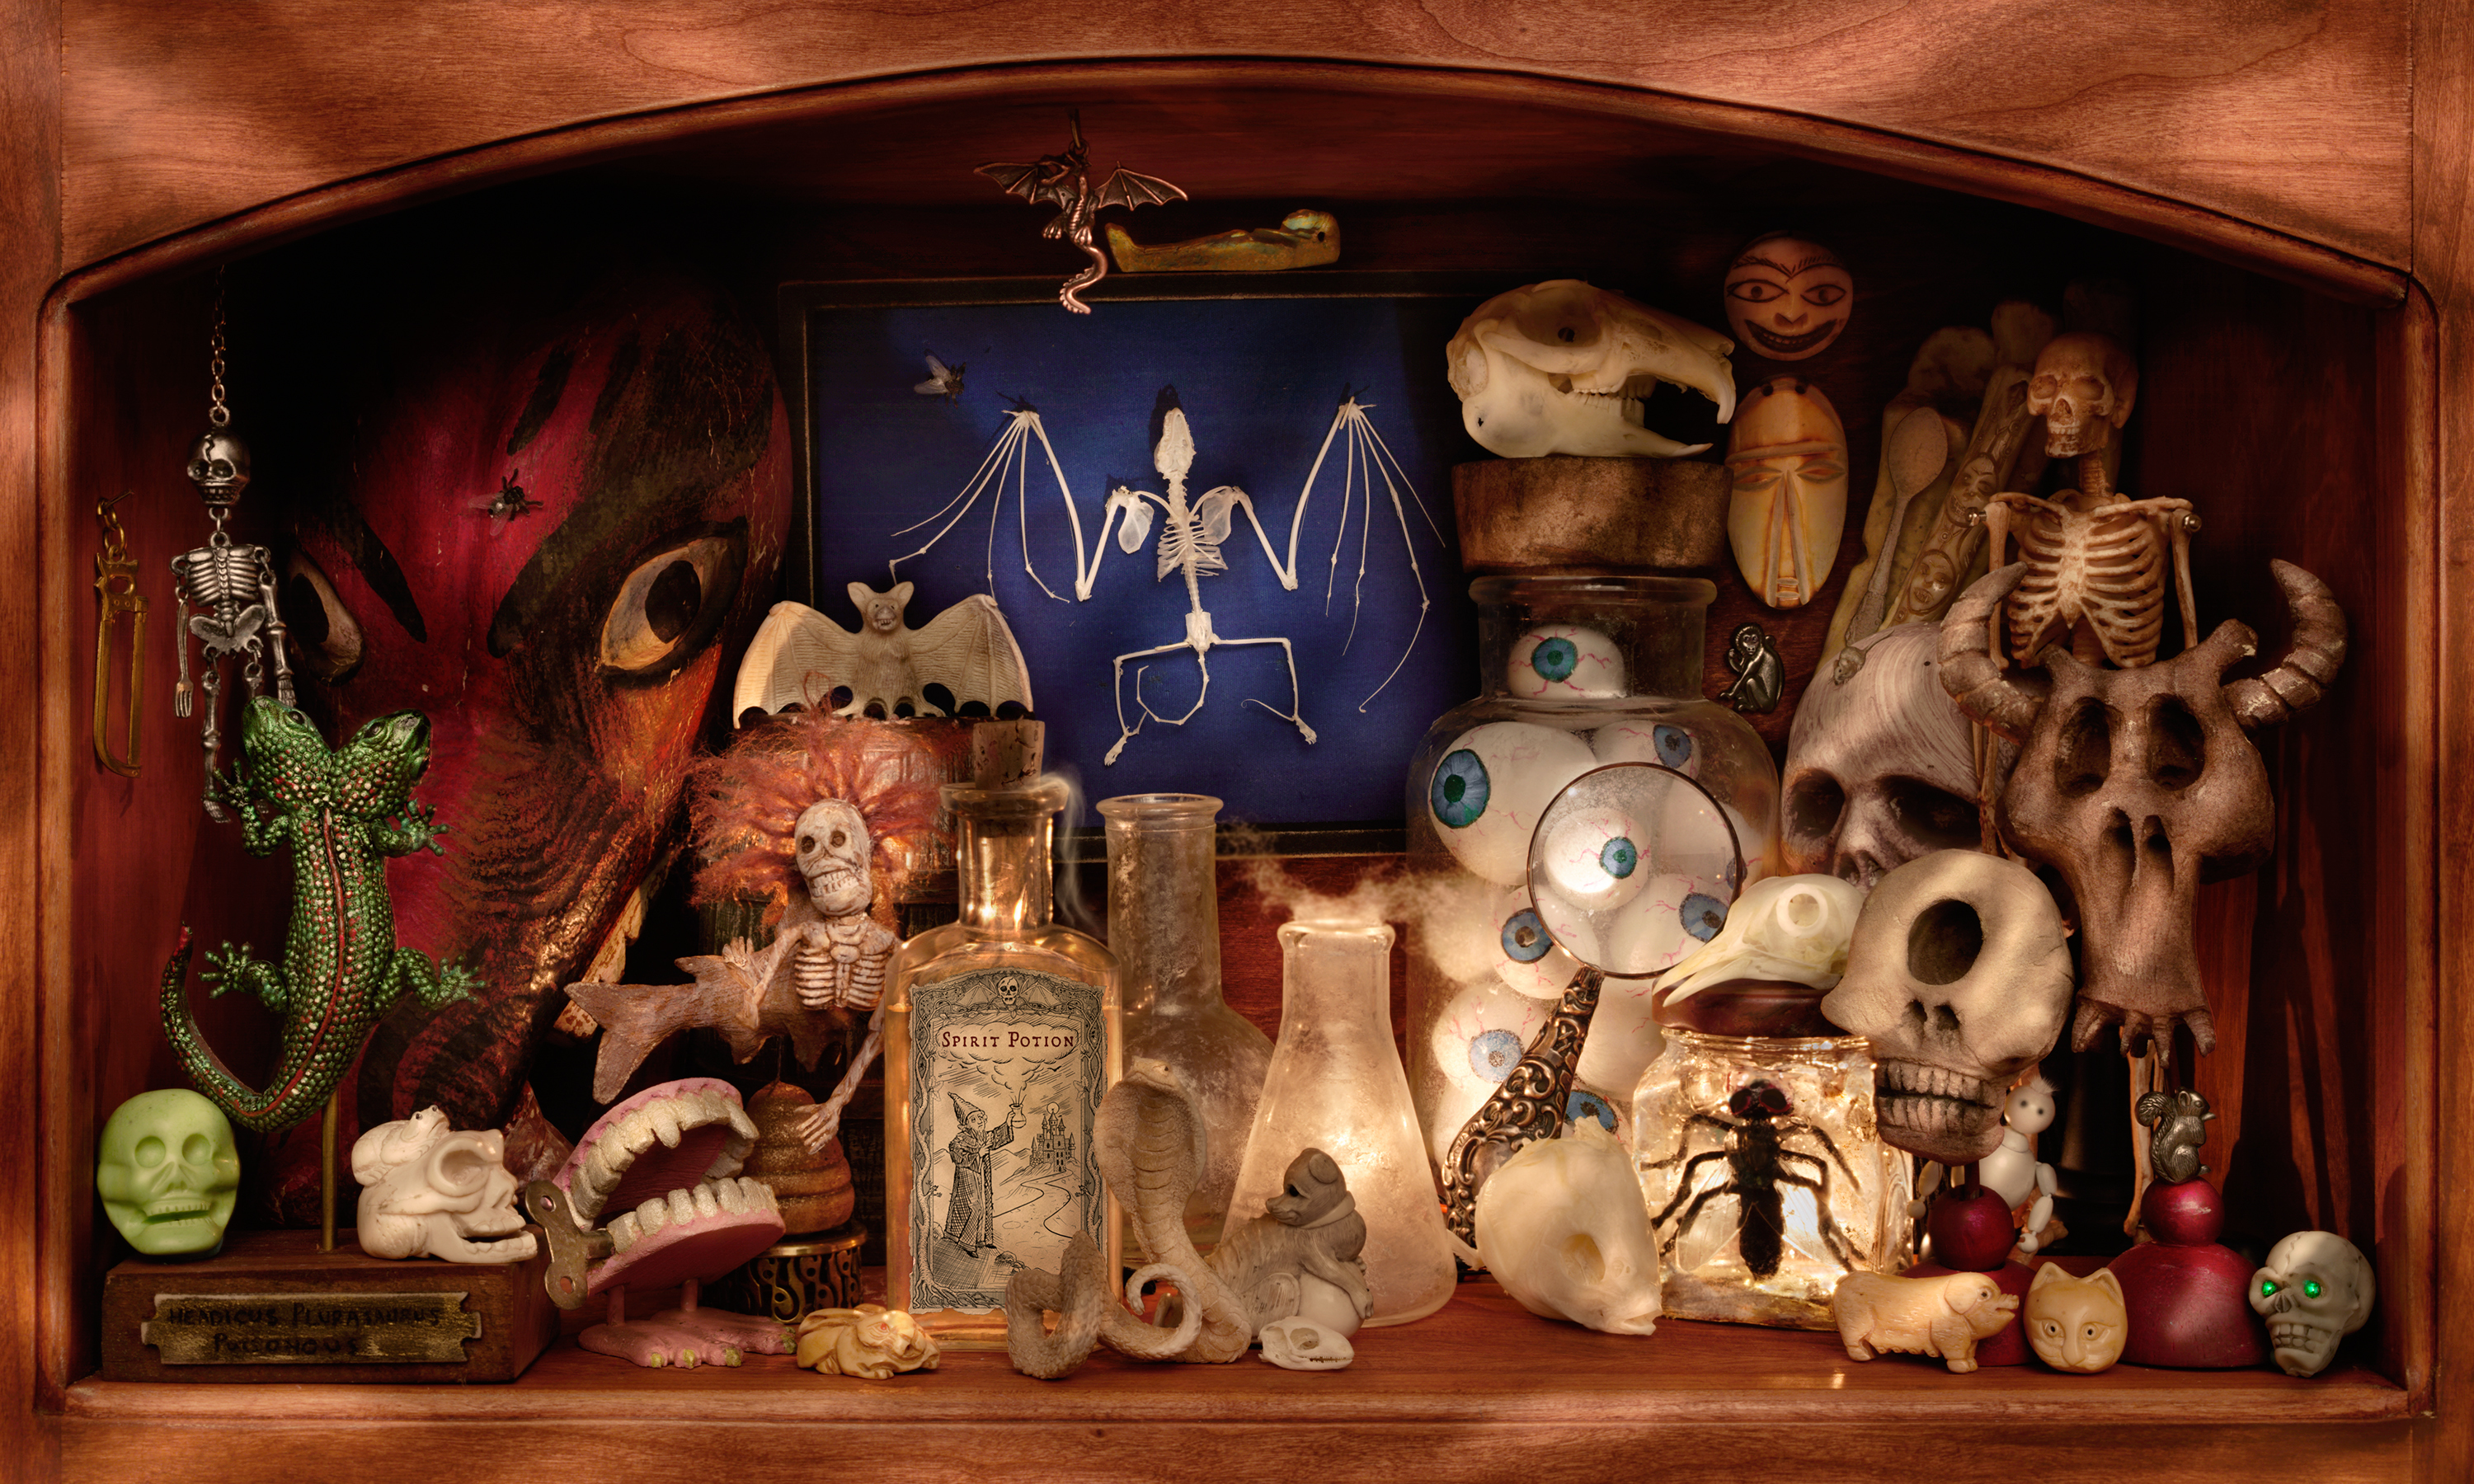 Walter Wick, <i>On A Scary Scary Shelf from Can You See What I See? On A Scary Scary Night</i>, 2007, Pigmented inkjet photograph, 50 x 30 in., Gift of Walter Wick and Linda Cheverton Wick, 2015.116.12LIC